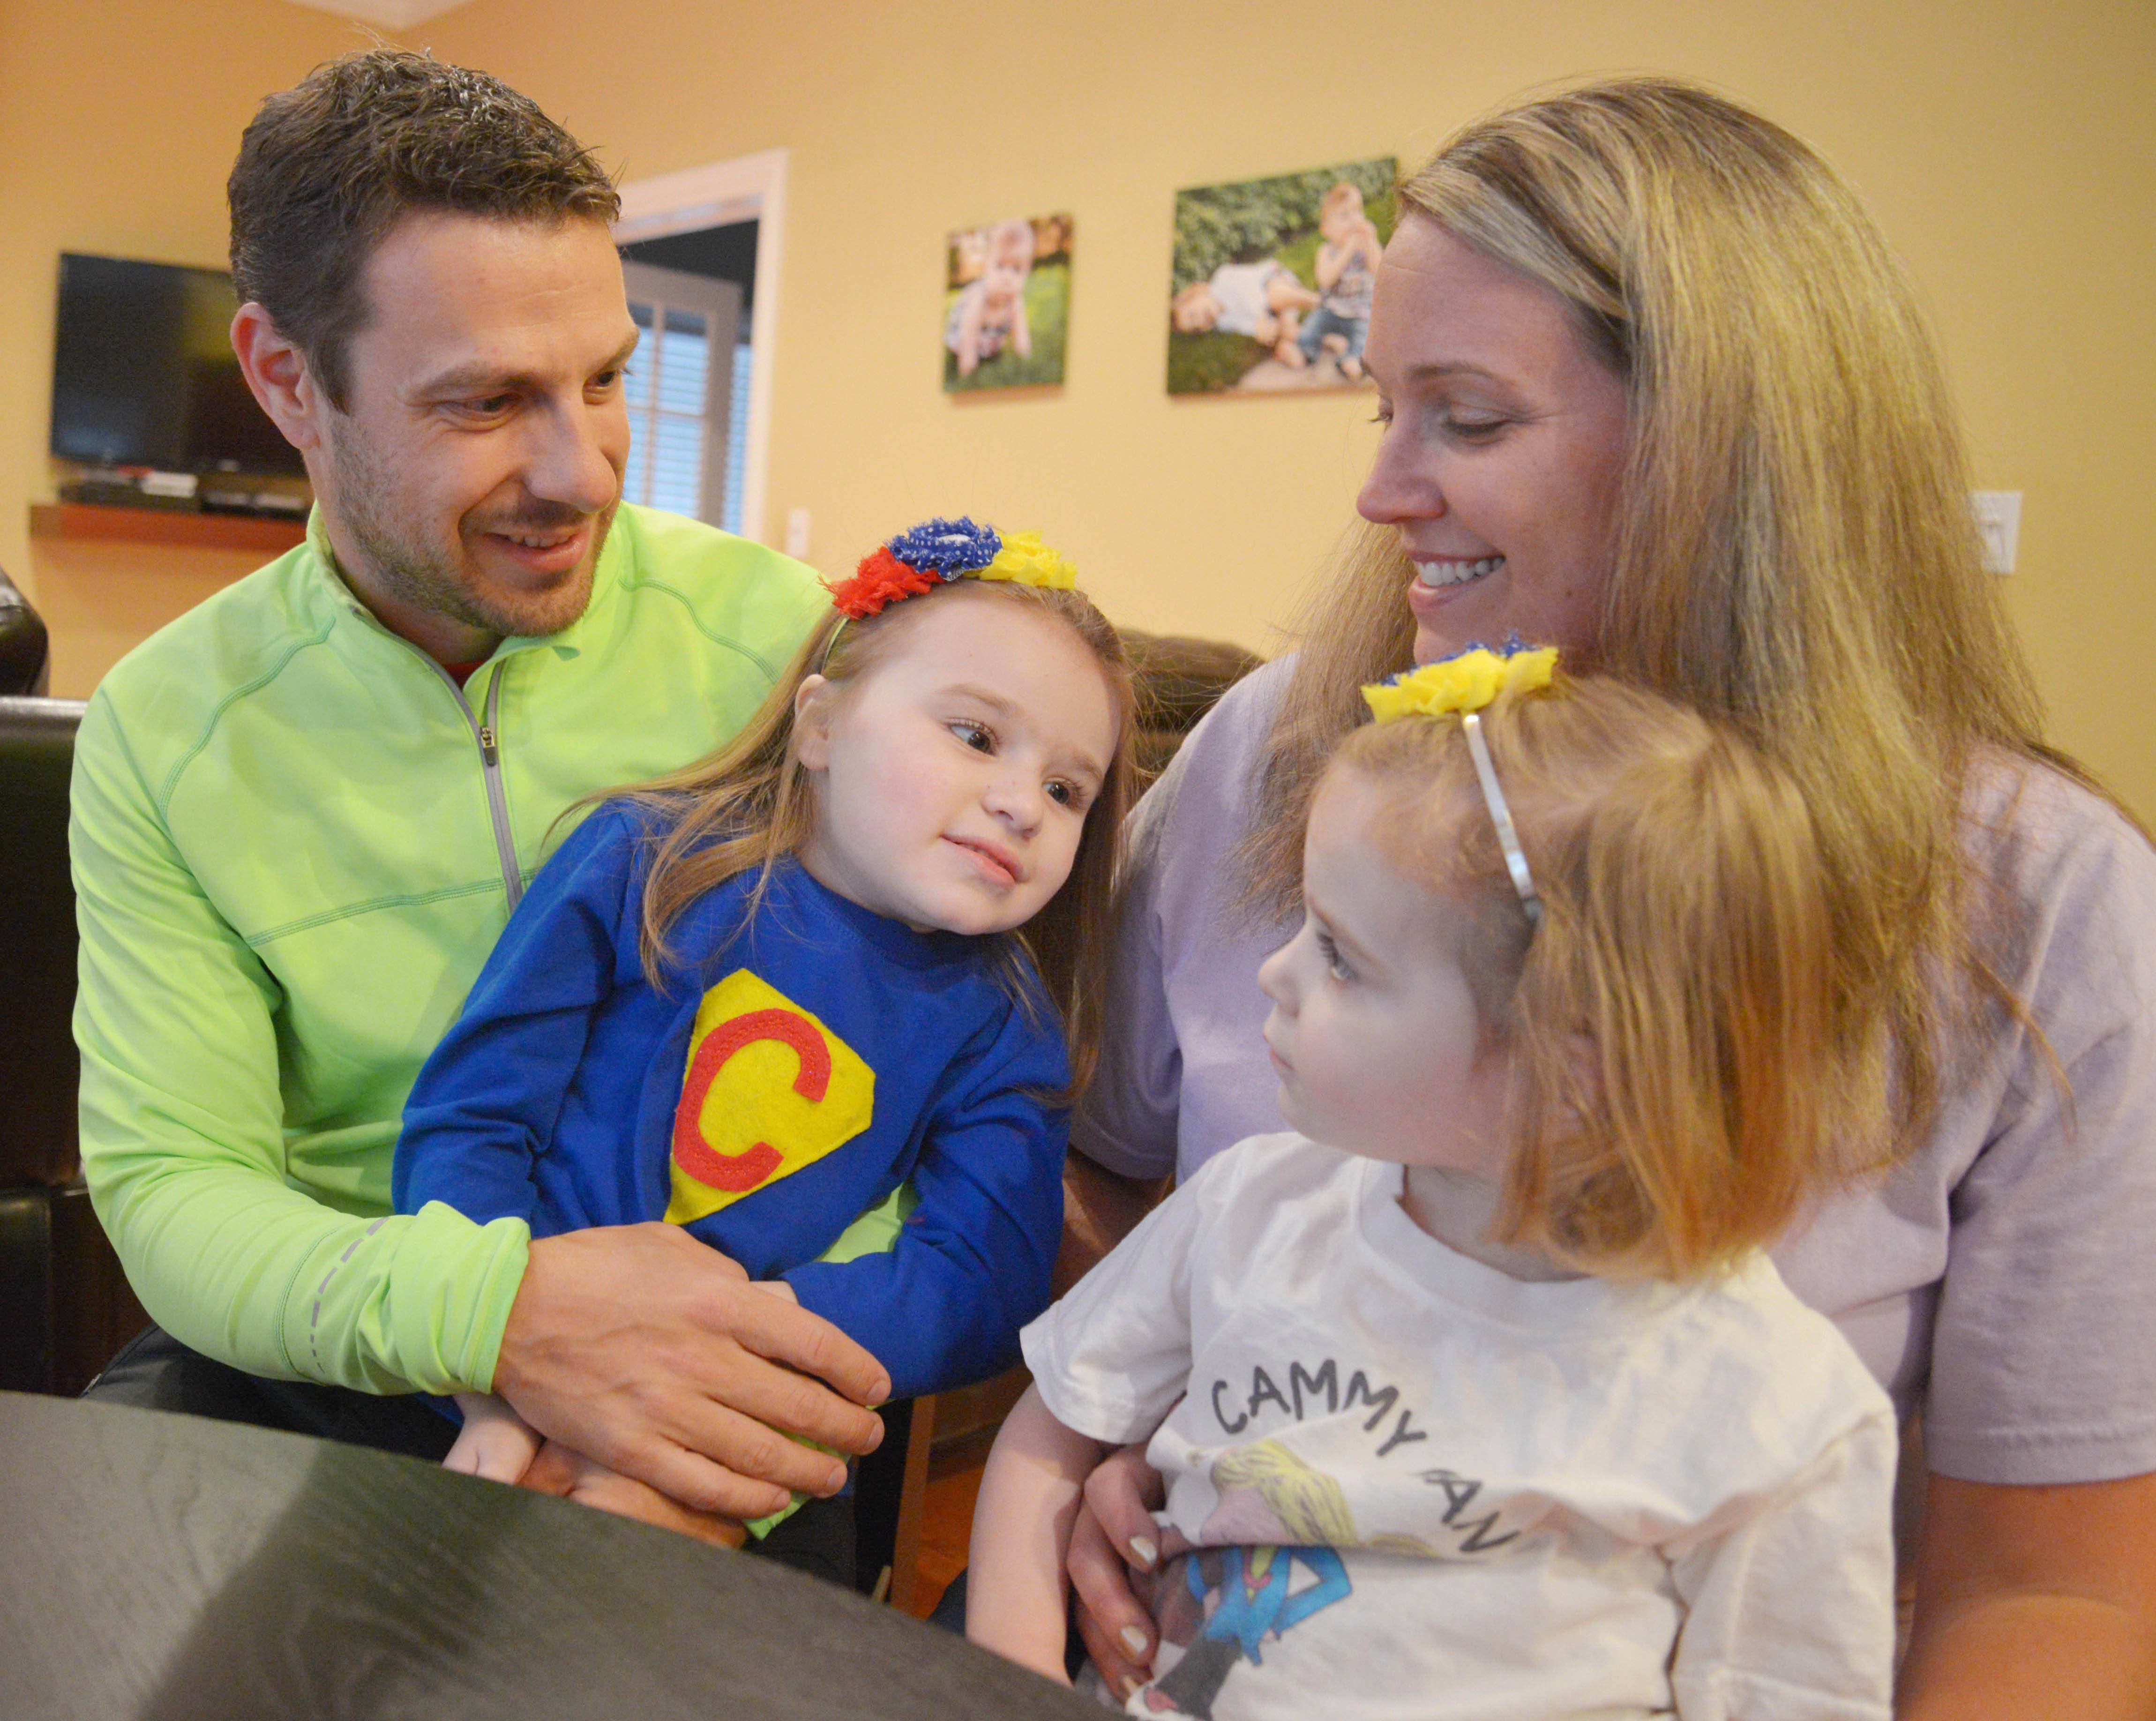 Wearing her Cammy Can superhero outfit, Cameron and her younger sister, Ryan, enjoy some quality lap time with parents Bill and Jackie Babiarz in their Wheaton home.